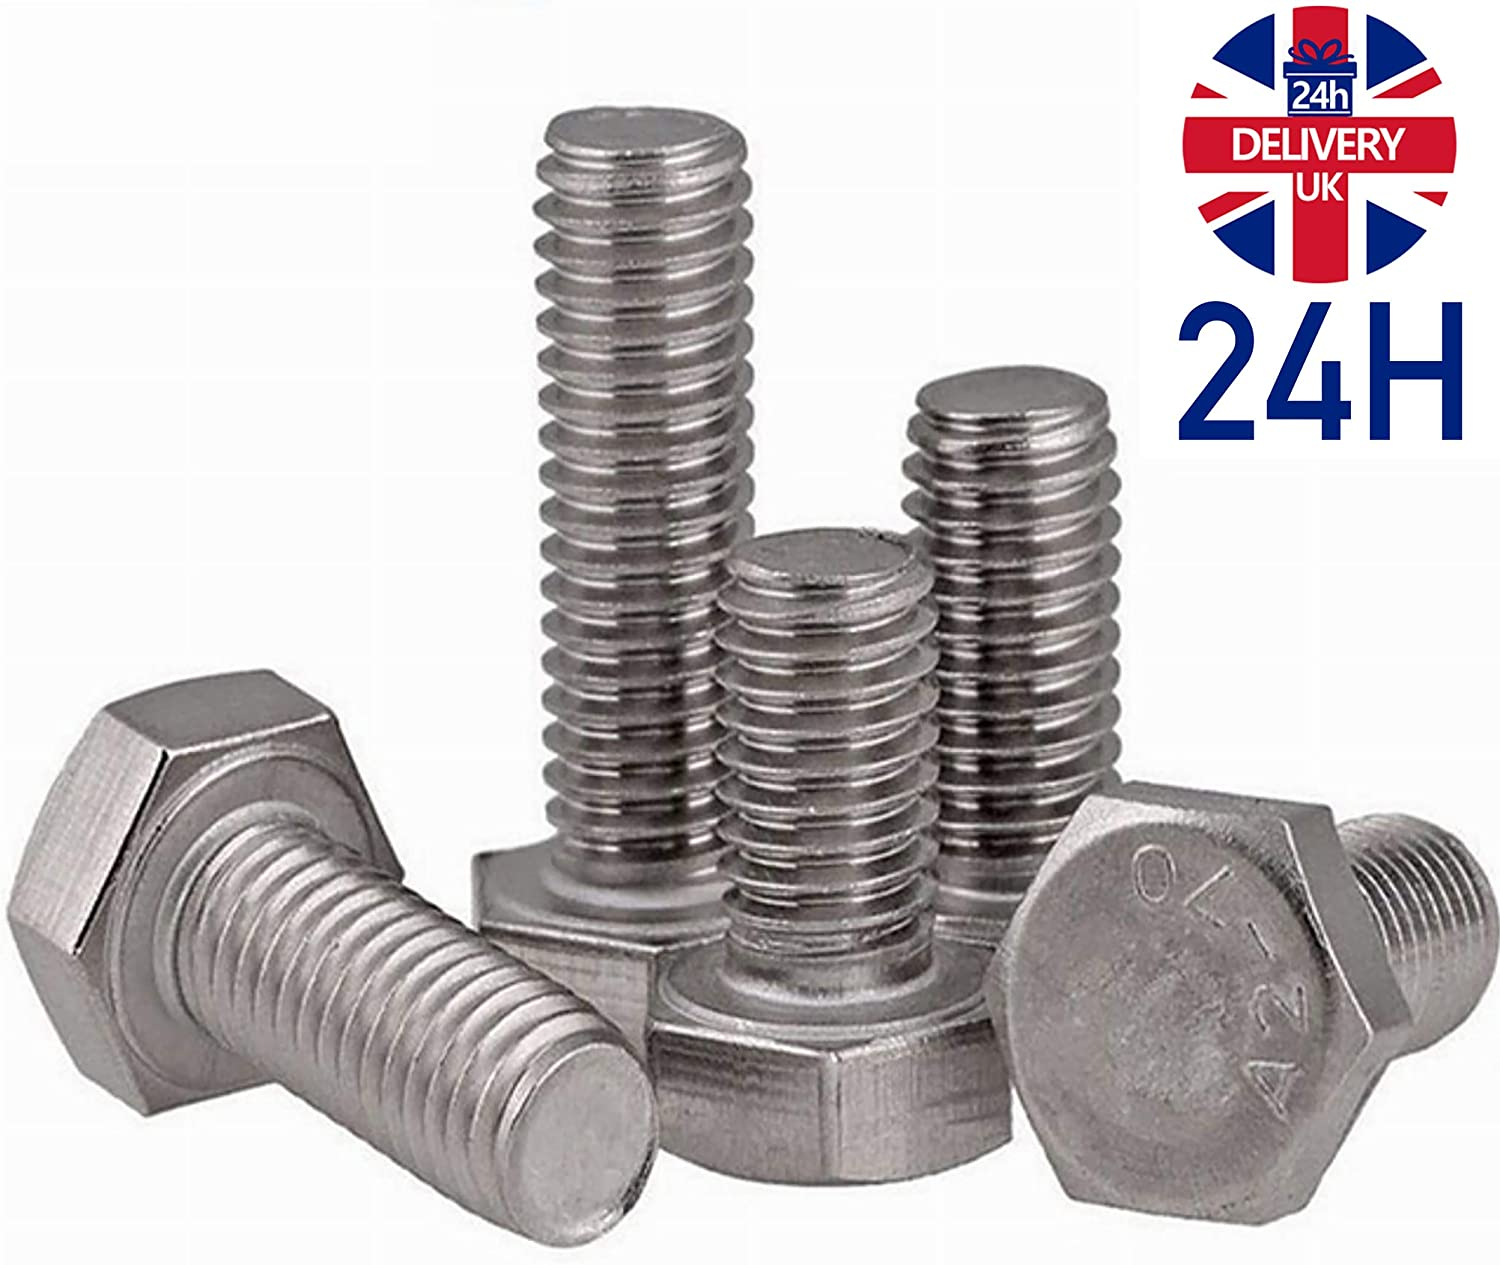 PACK of 10 Stainless Steel A2 DIN 933 Metric Coarse Hex Setscrews A2-70 304 //FREE 24H Delivery Hexagon Head Bolts Fully Threaded